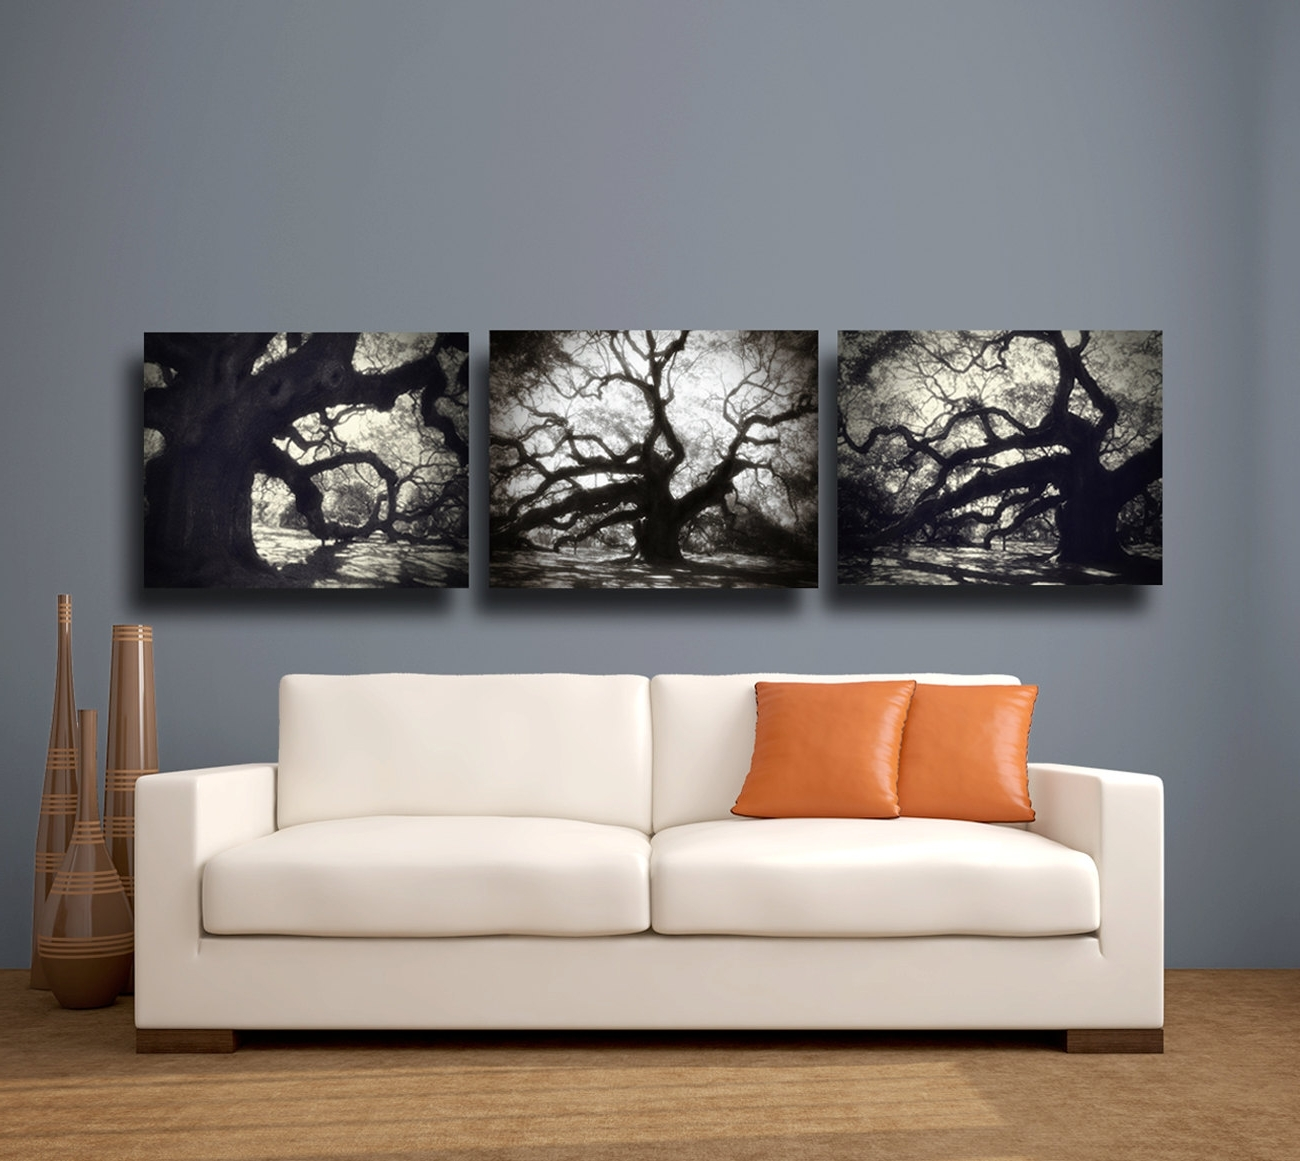 Black And White Canvas Wall Art With Regard To Well Known Wall Art Designs: Black And White Canvas Wall Art Astounding (View 4 of 15)